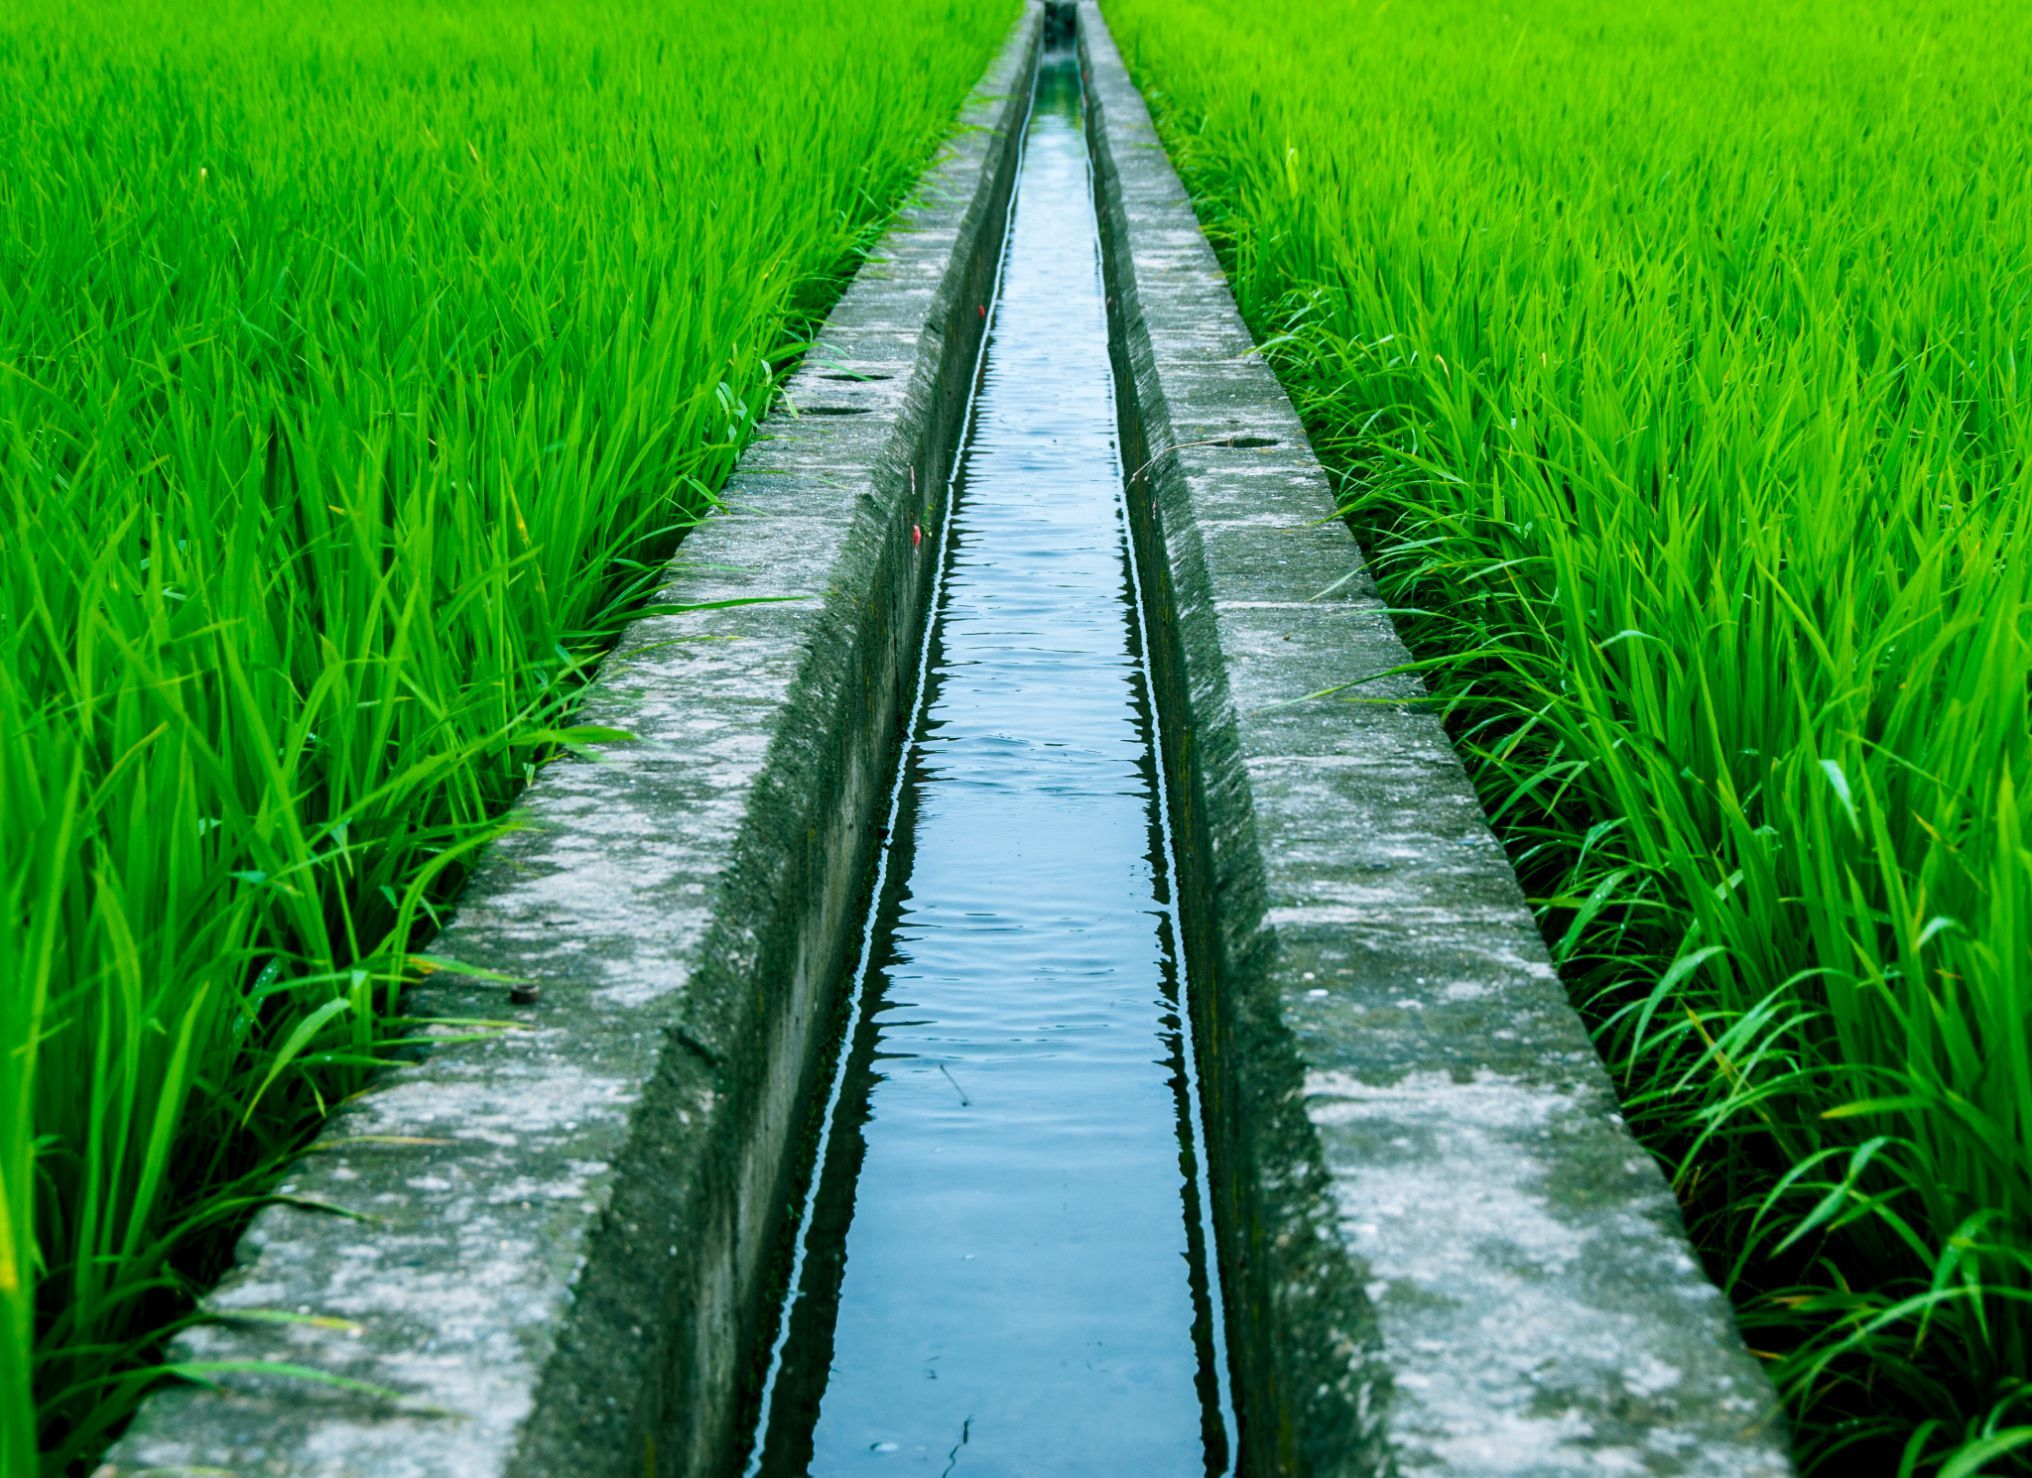 Irrigation systems are critically important to healthy